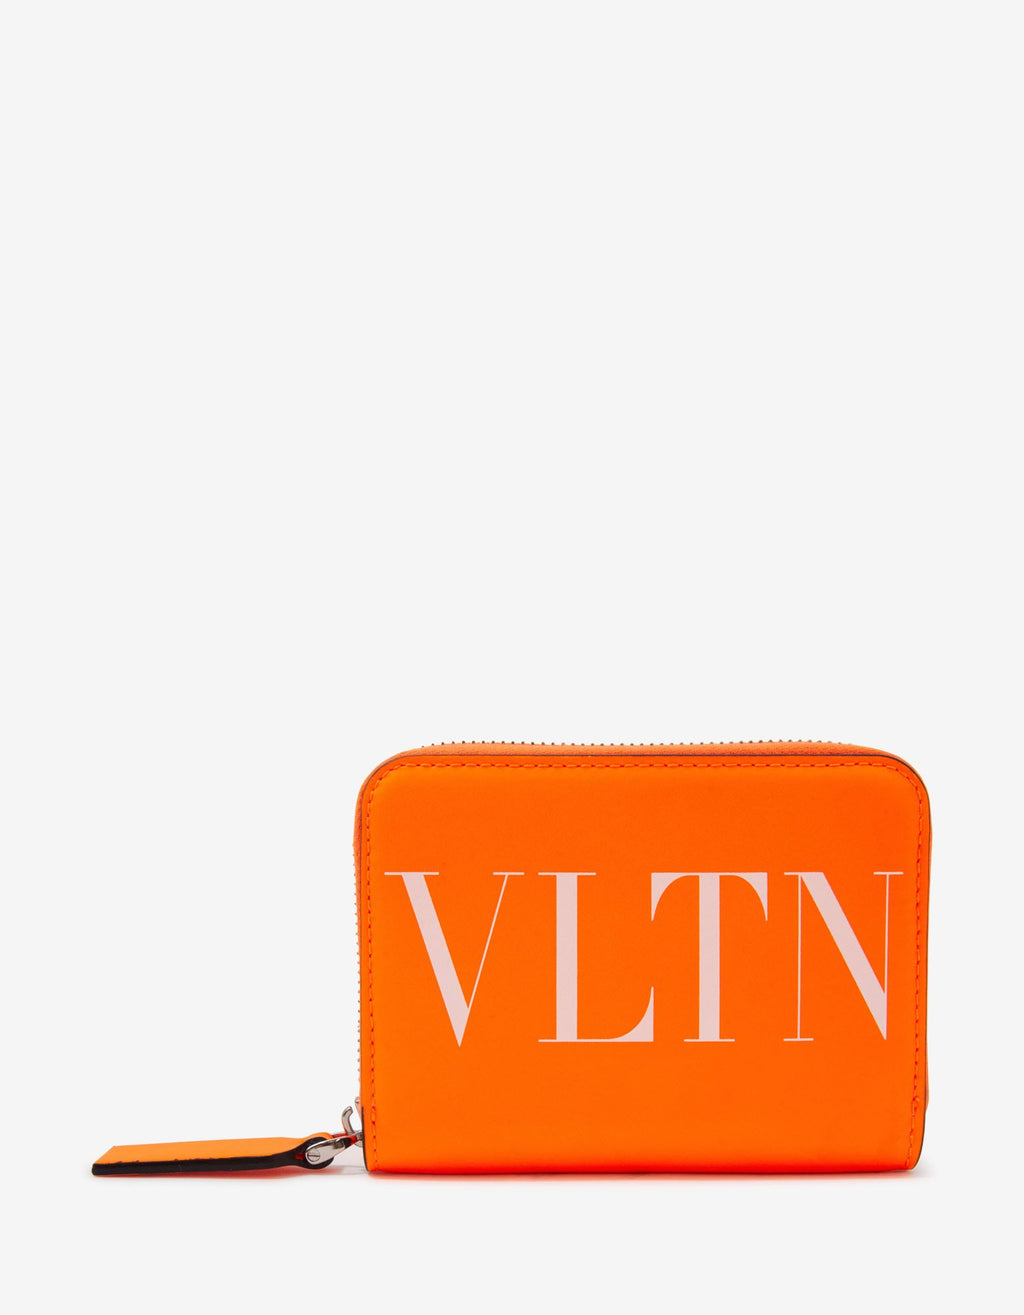 Neon Orange VLTN Wallet with Neck Strap -